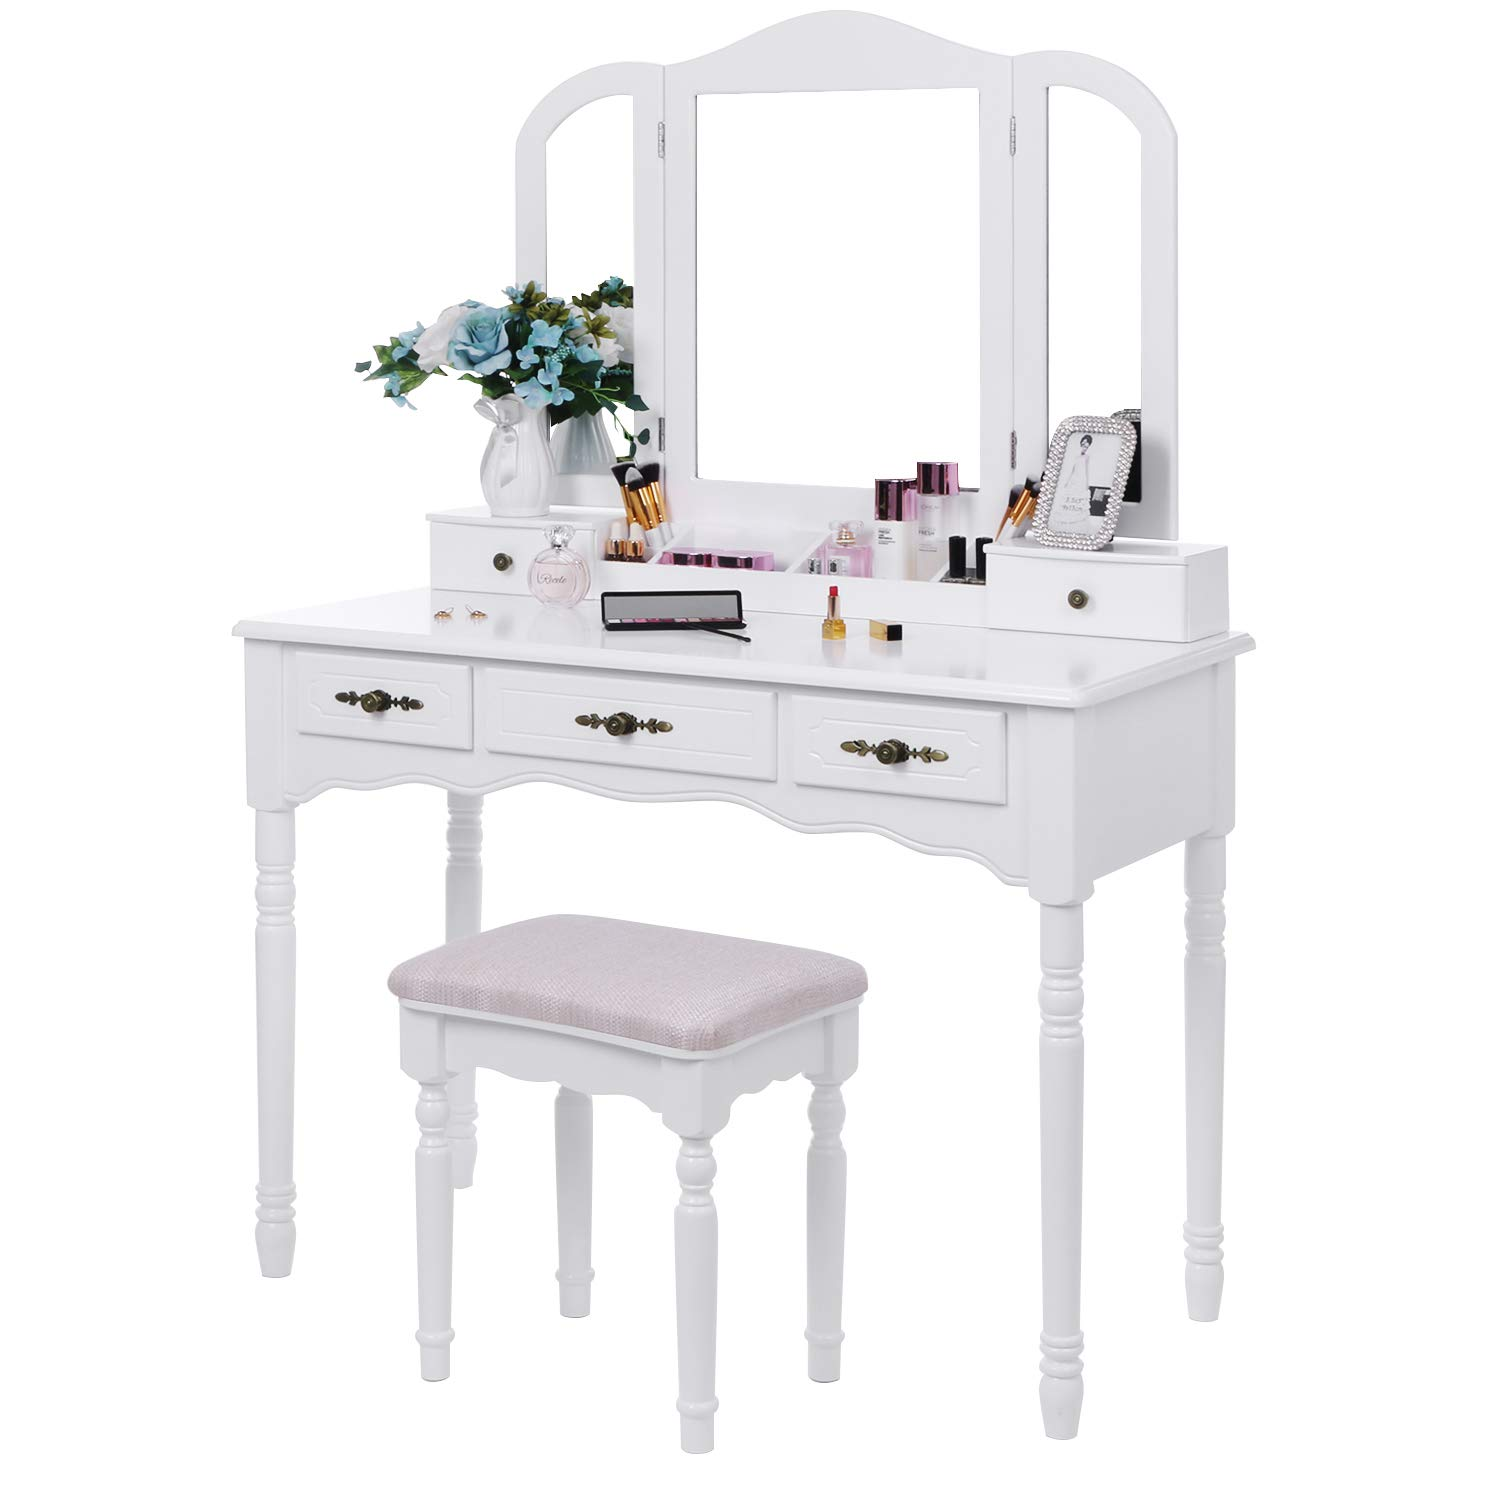 BEWISHOME Vanity Set Makeup Dressing Table and Cushioned Stool, Large Tri-Folding Mirror, 5 Drawers, 2 Dividers, Desktop Makeup Organizer Makeup Vanity Desk for Girls Women White FST06W by BEWISHOME